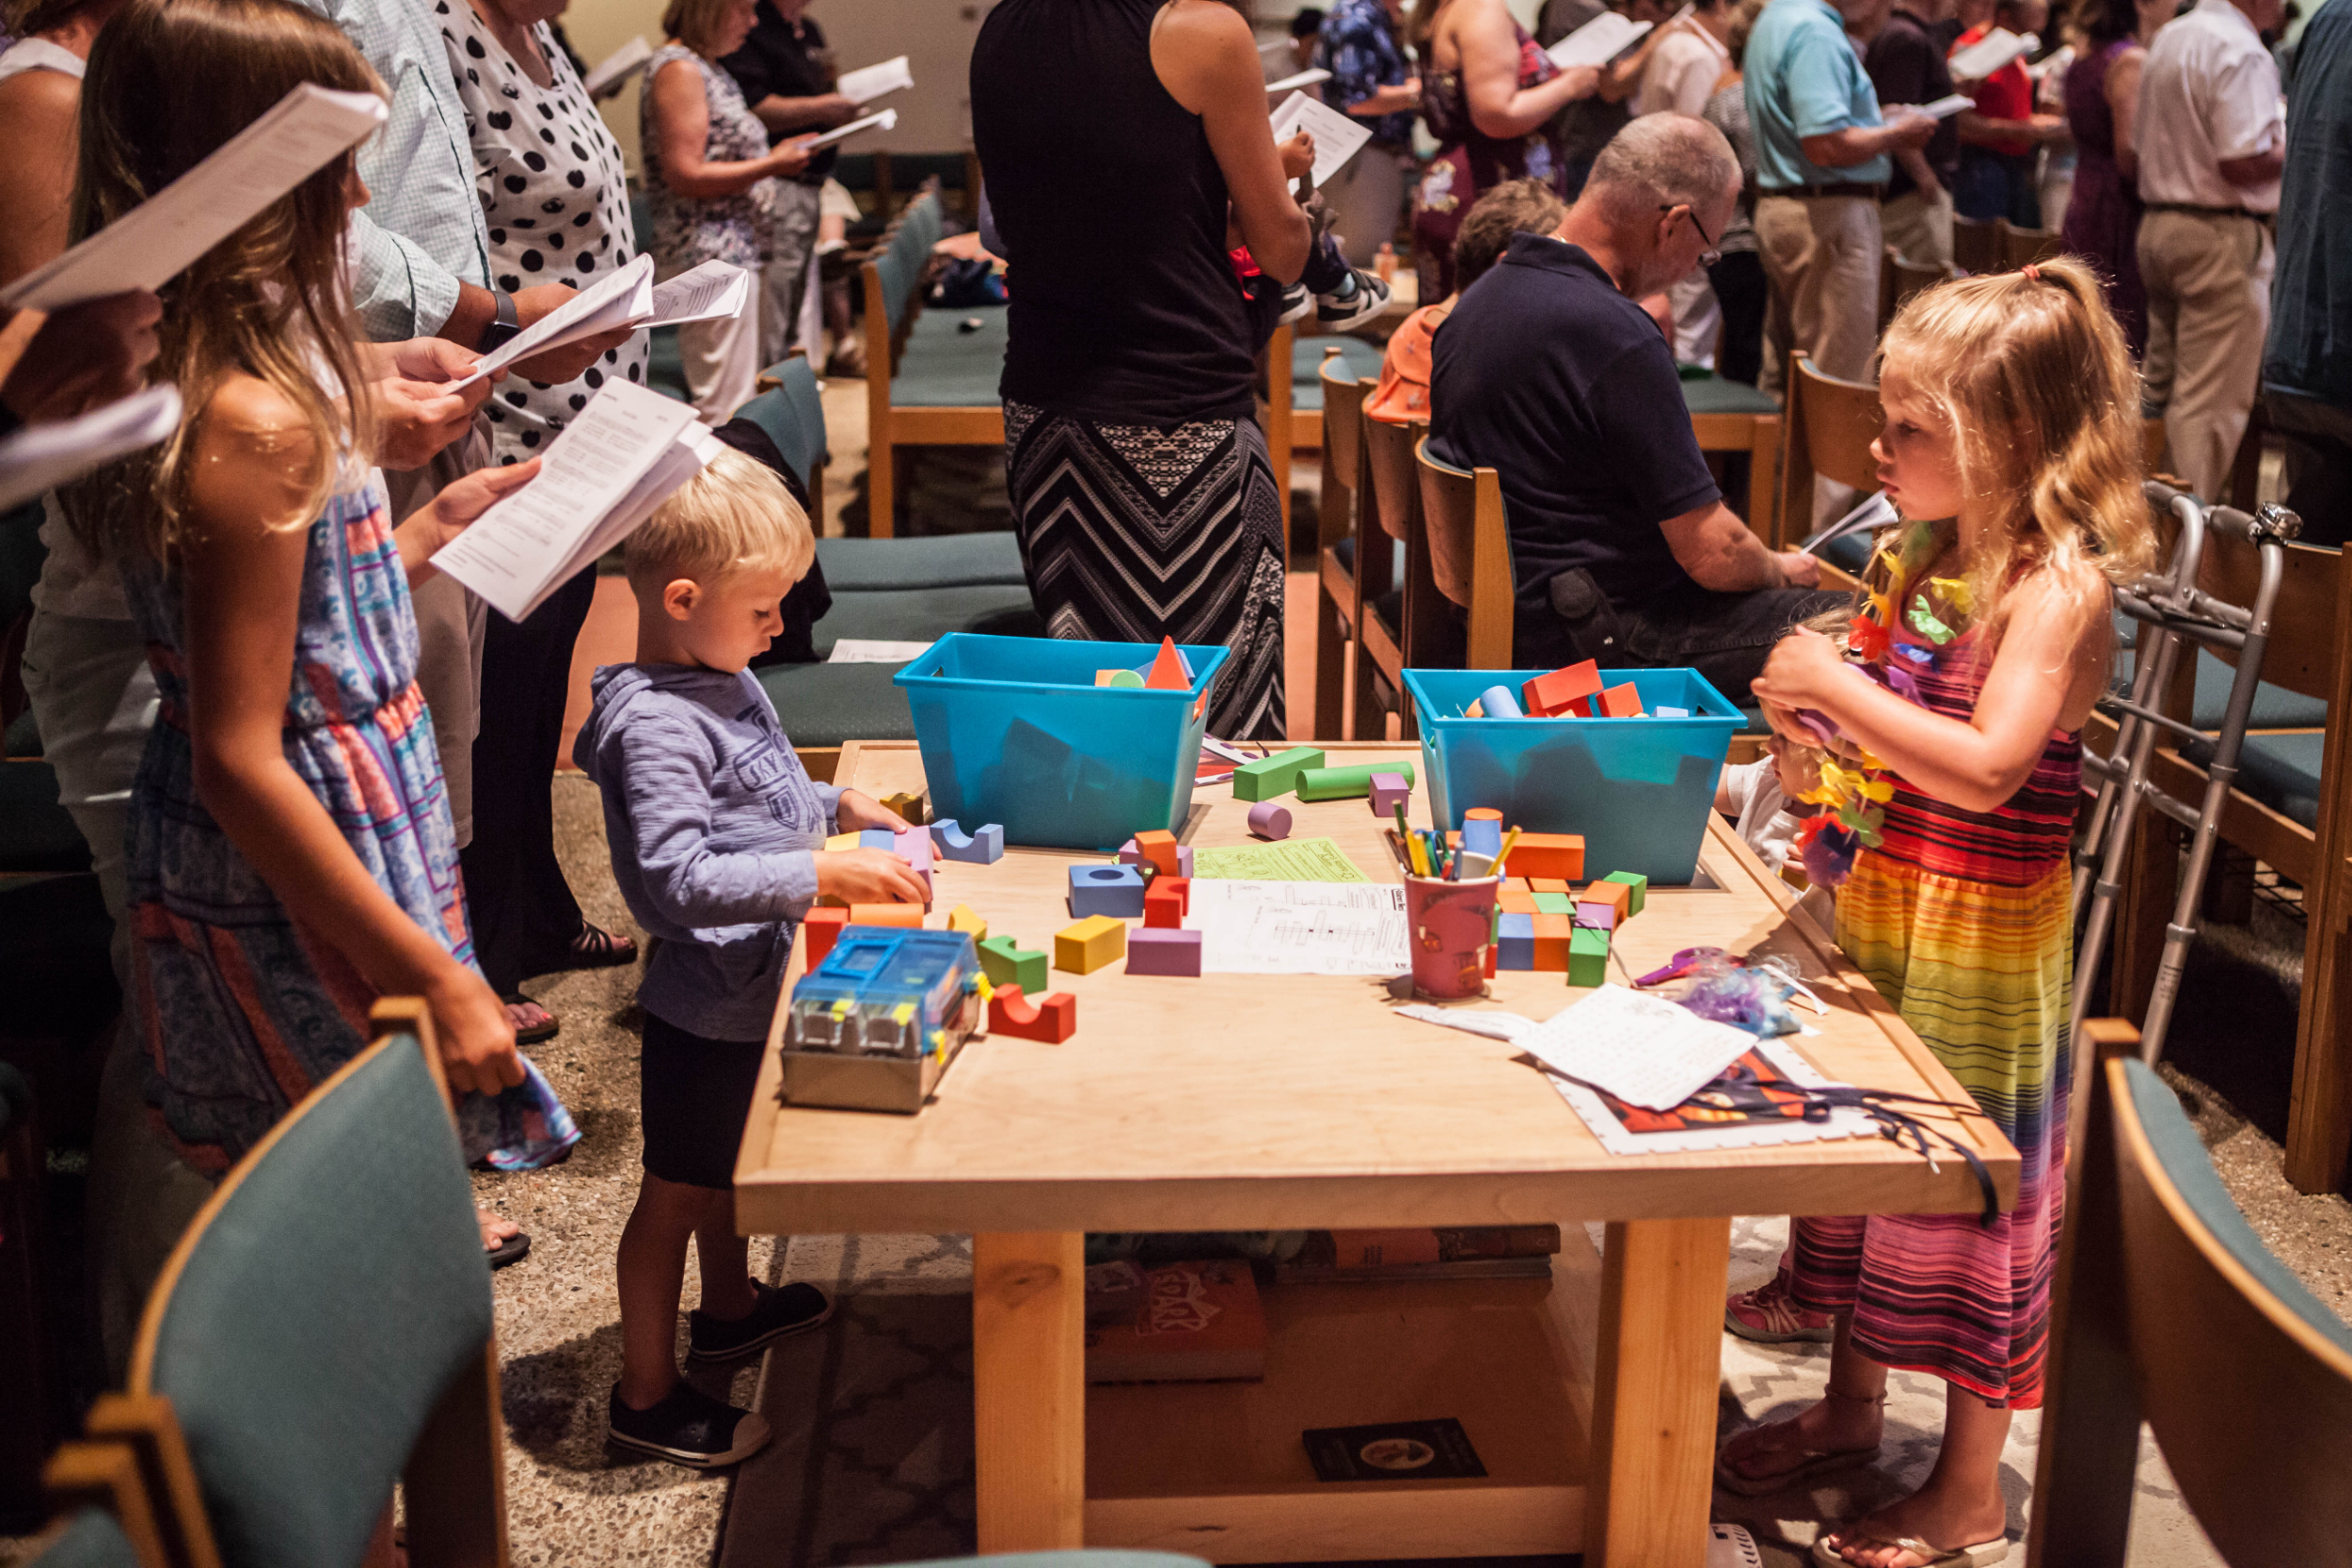 Worship tables - We have three worship tables in our sanctuary for children to use. Each table has a Children's Bulletin. Your family is welcome to sit near one, and your children can worship while they color and create artwork to decorate our sanctuary.